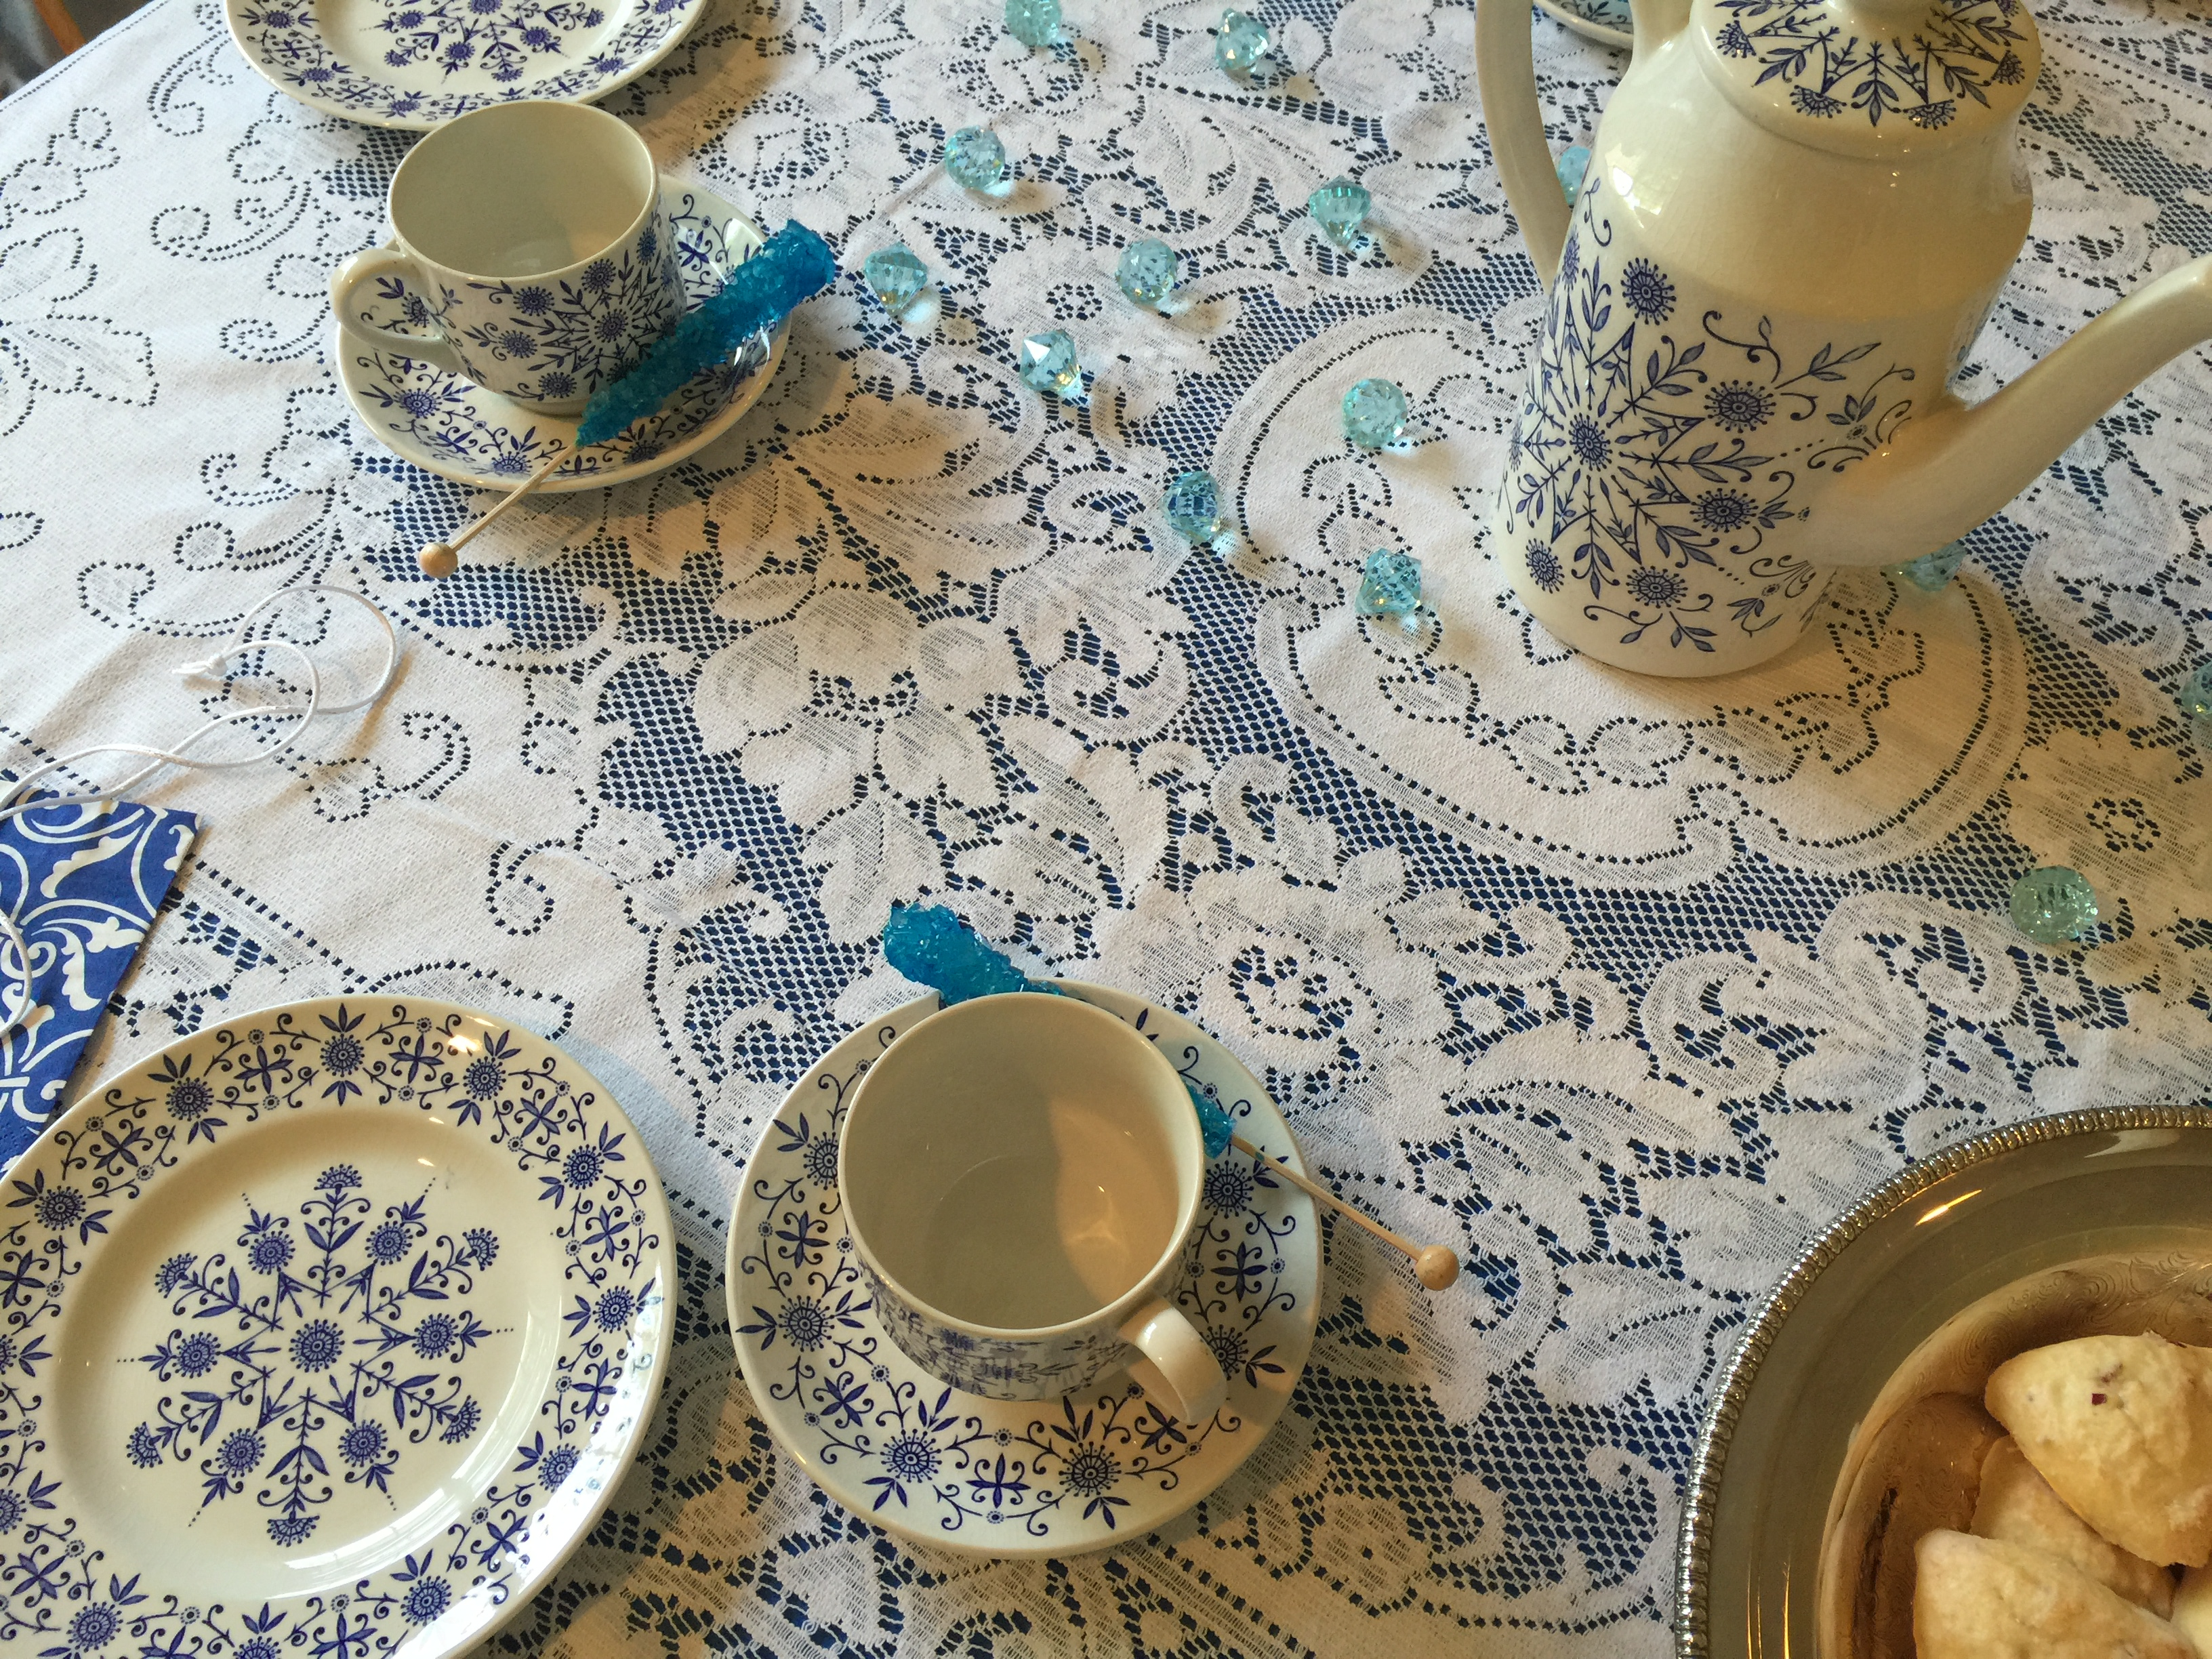 Ideas for a Snowflake Tea Party